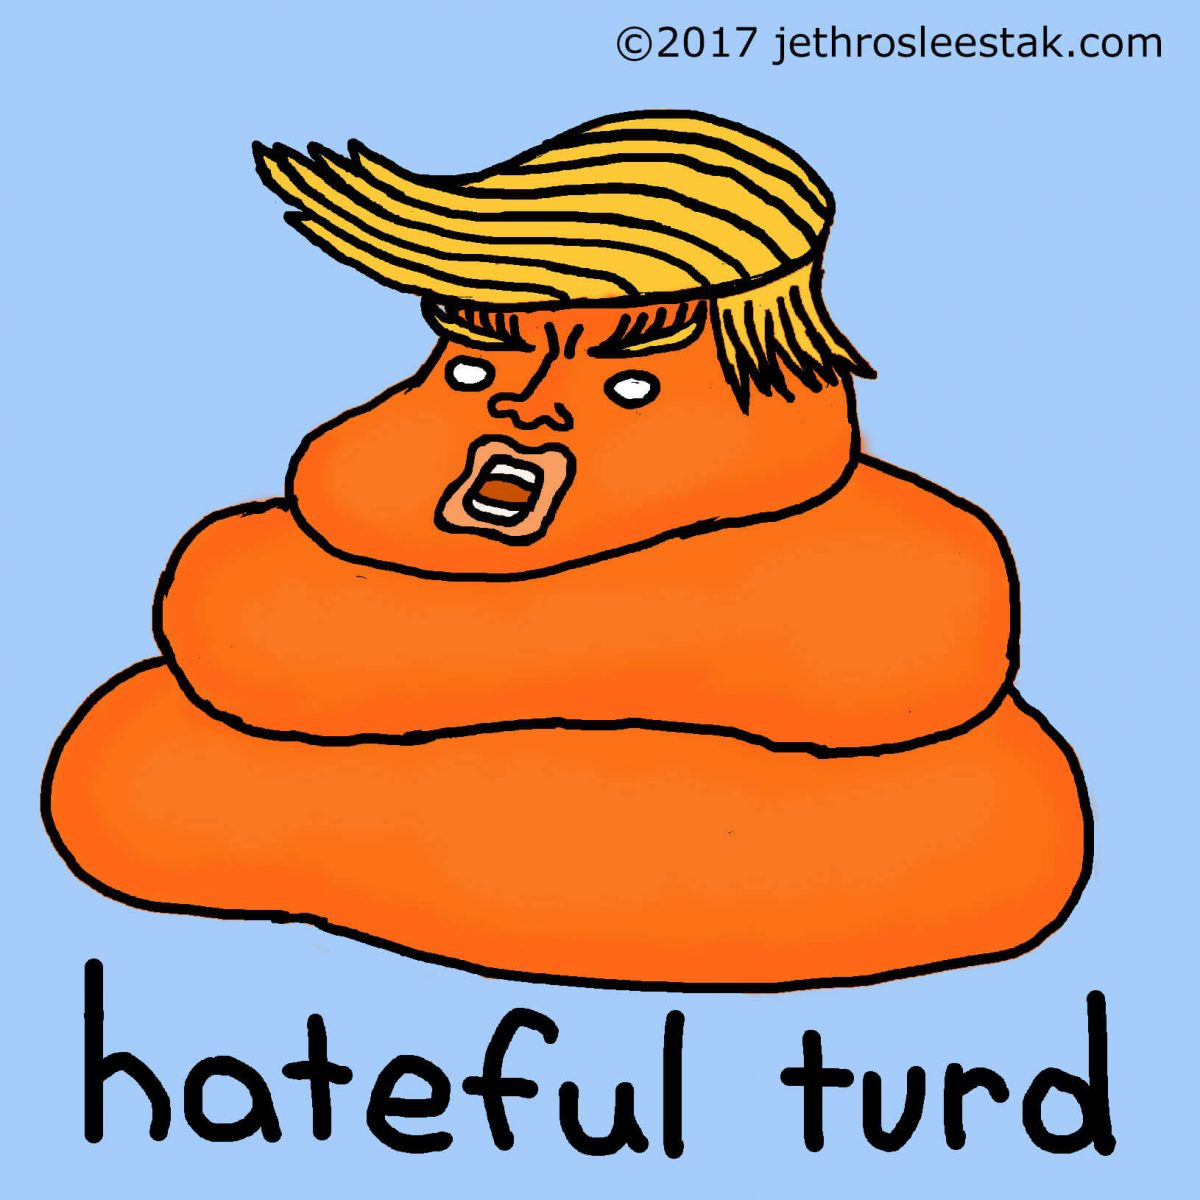 Hateful Turd Comic Strip Character v2